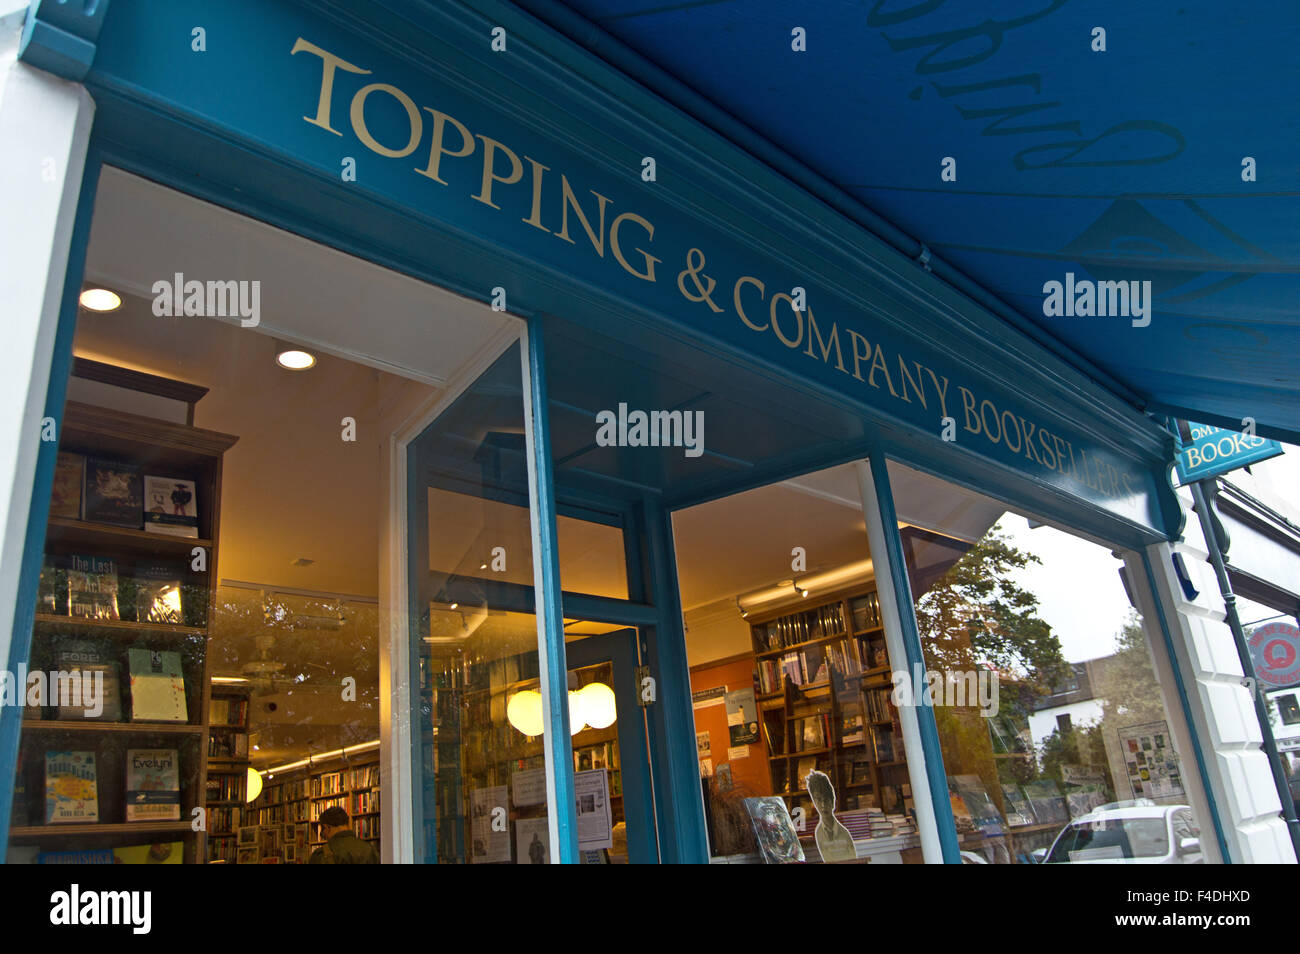 Topping & Company Booksellers St Andrews - Stock Image